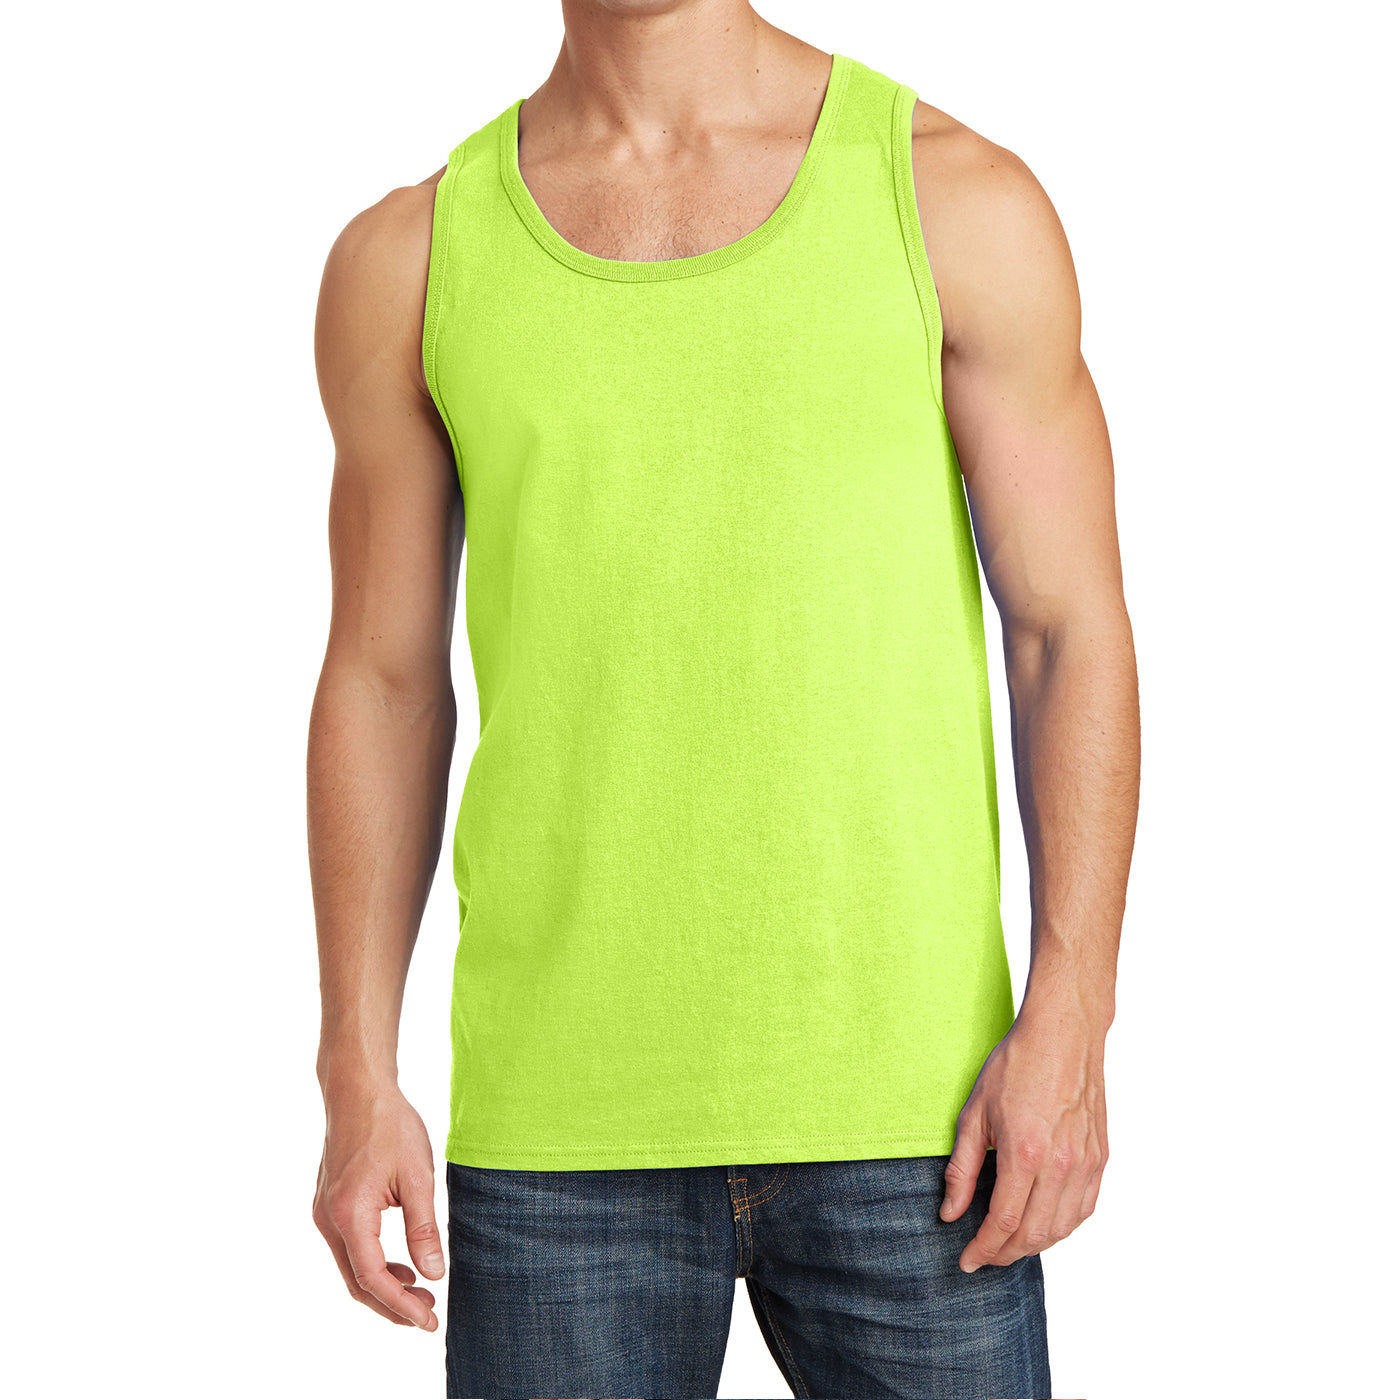 Men's Core Cotton Tank Top - Neon Yellow - Front